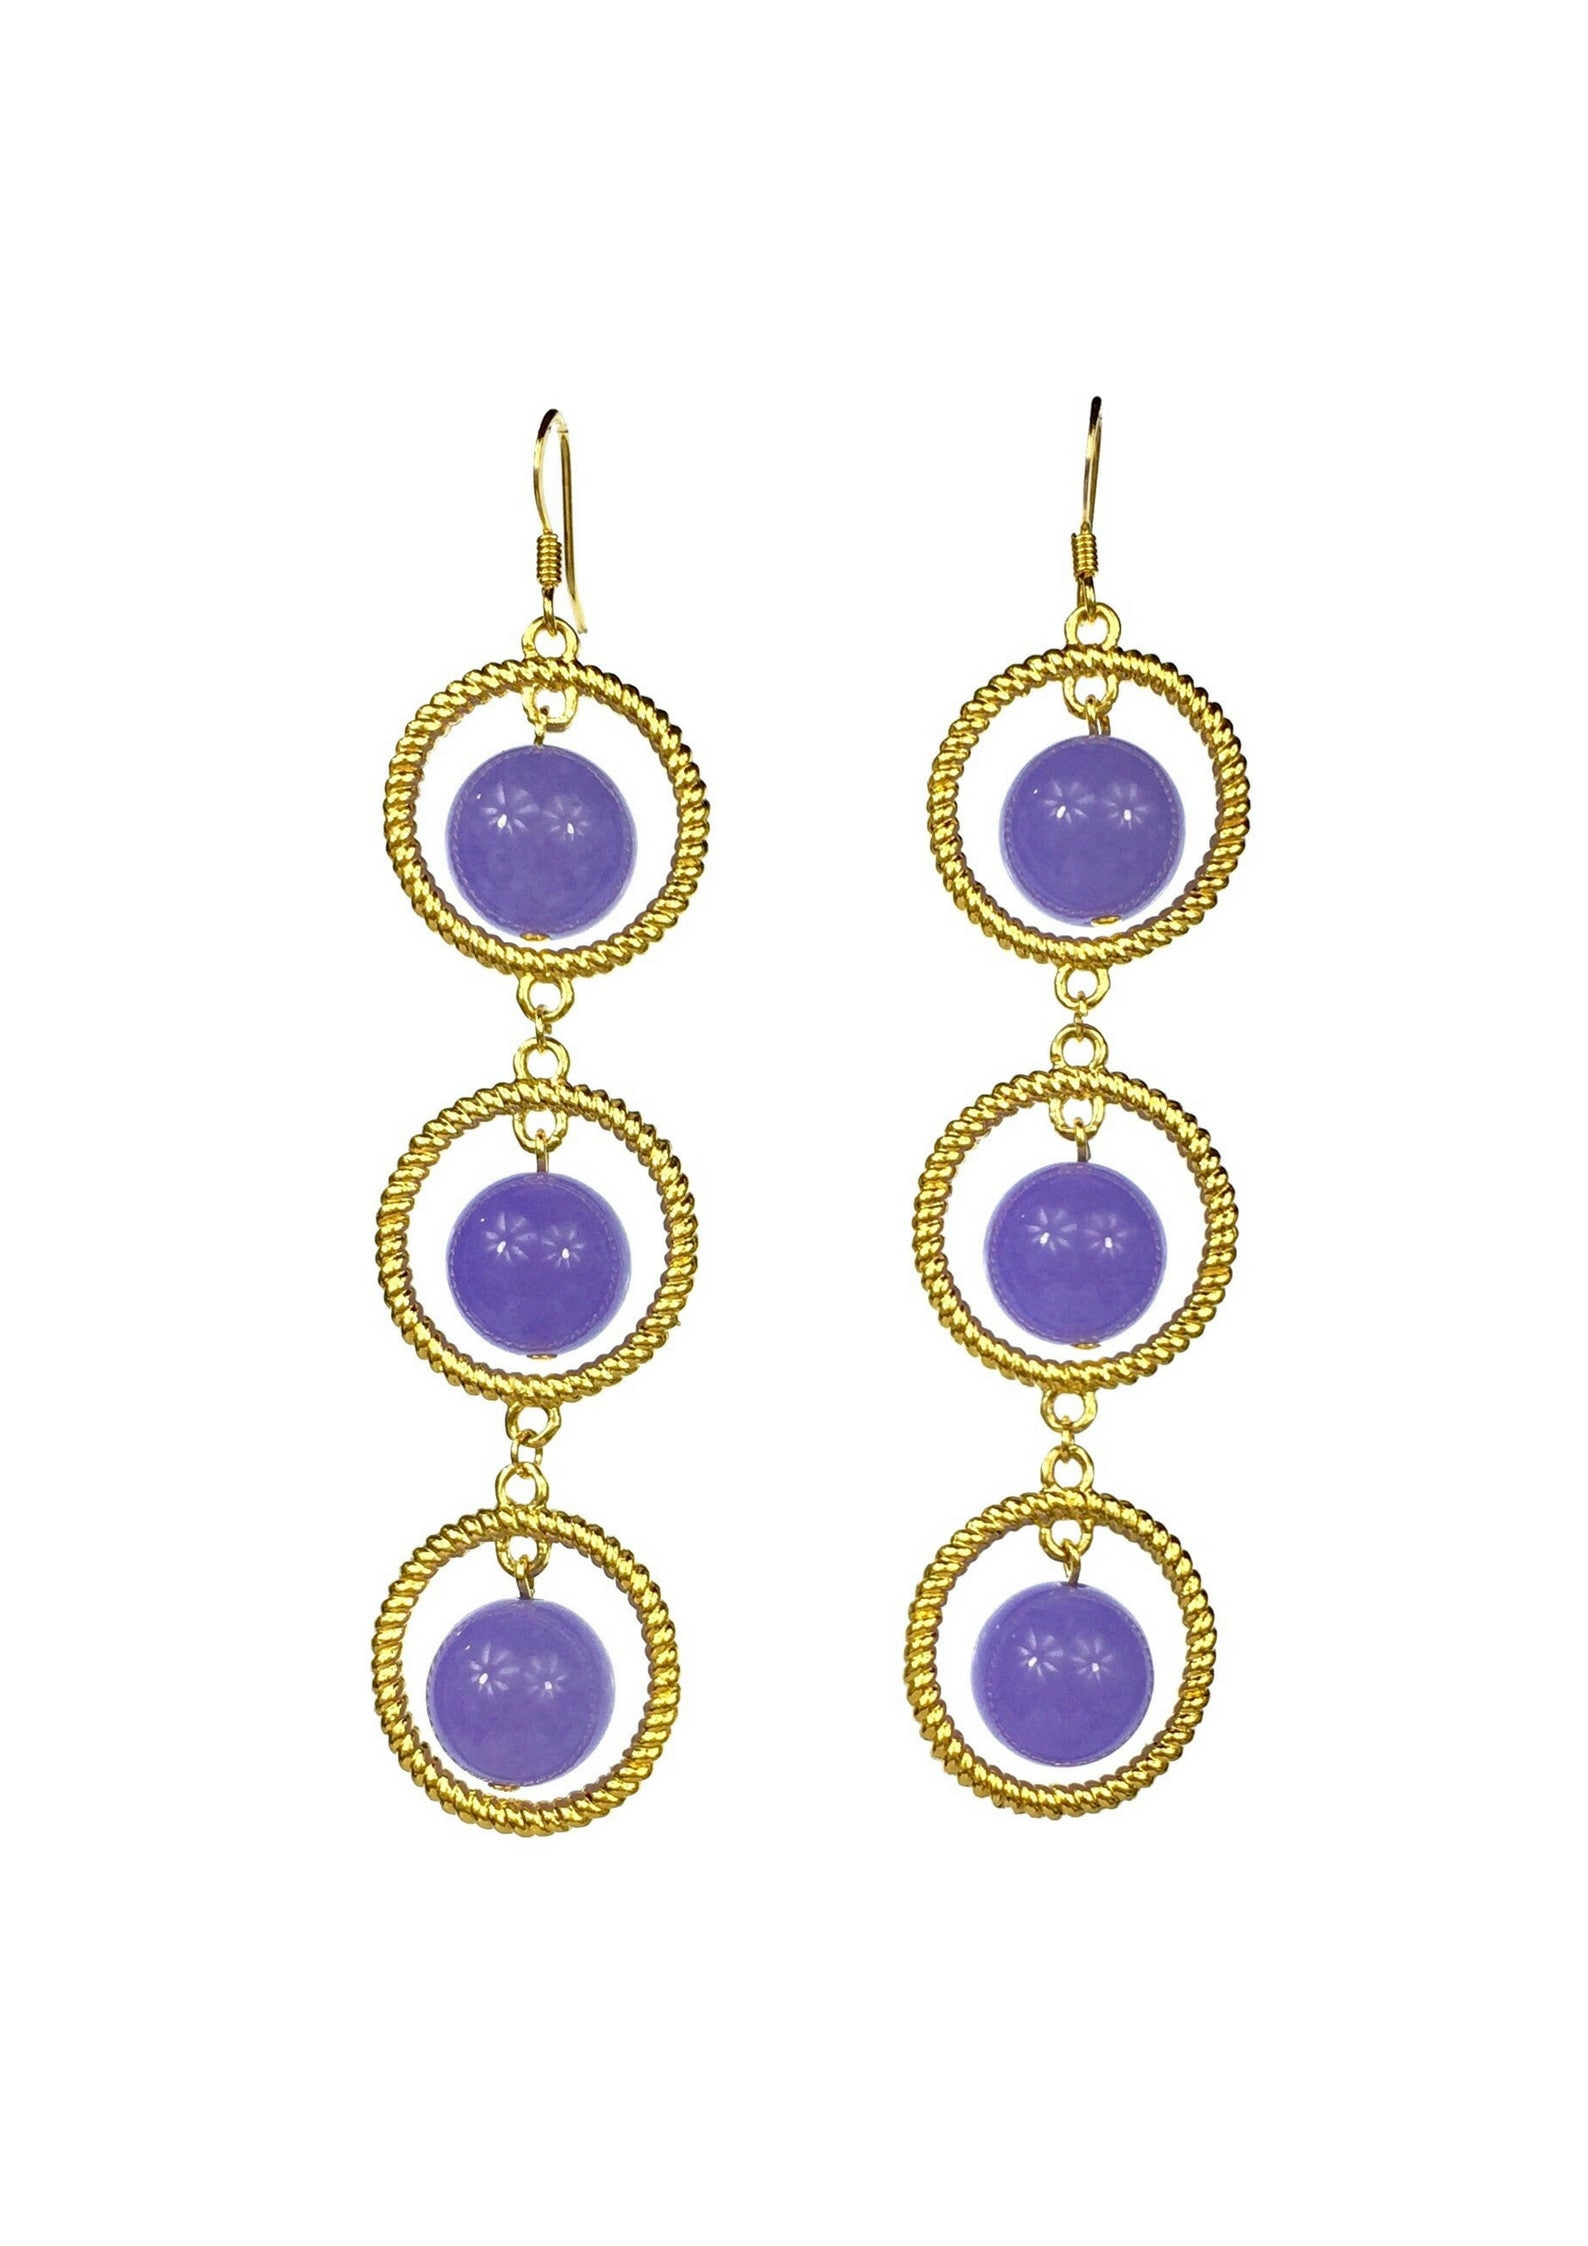 Lavender Orrery Hook Earrings-Earrings-Jared Jamin Online-Lavender/Gold-JARED JAMIN